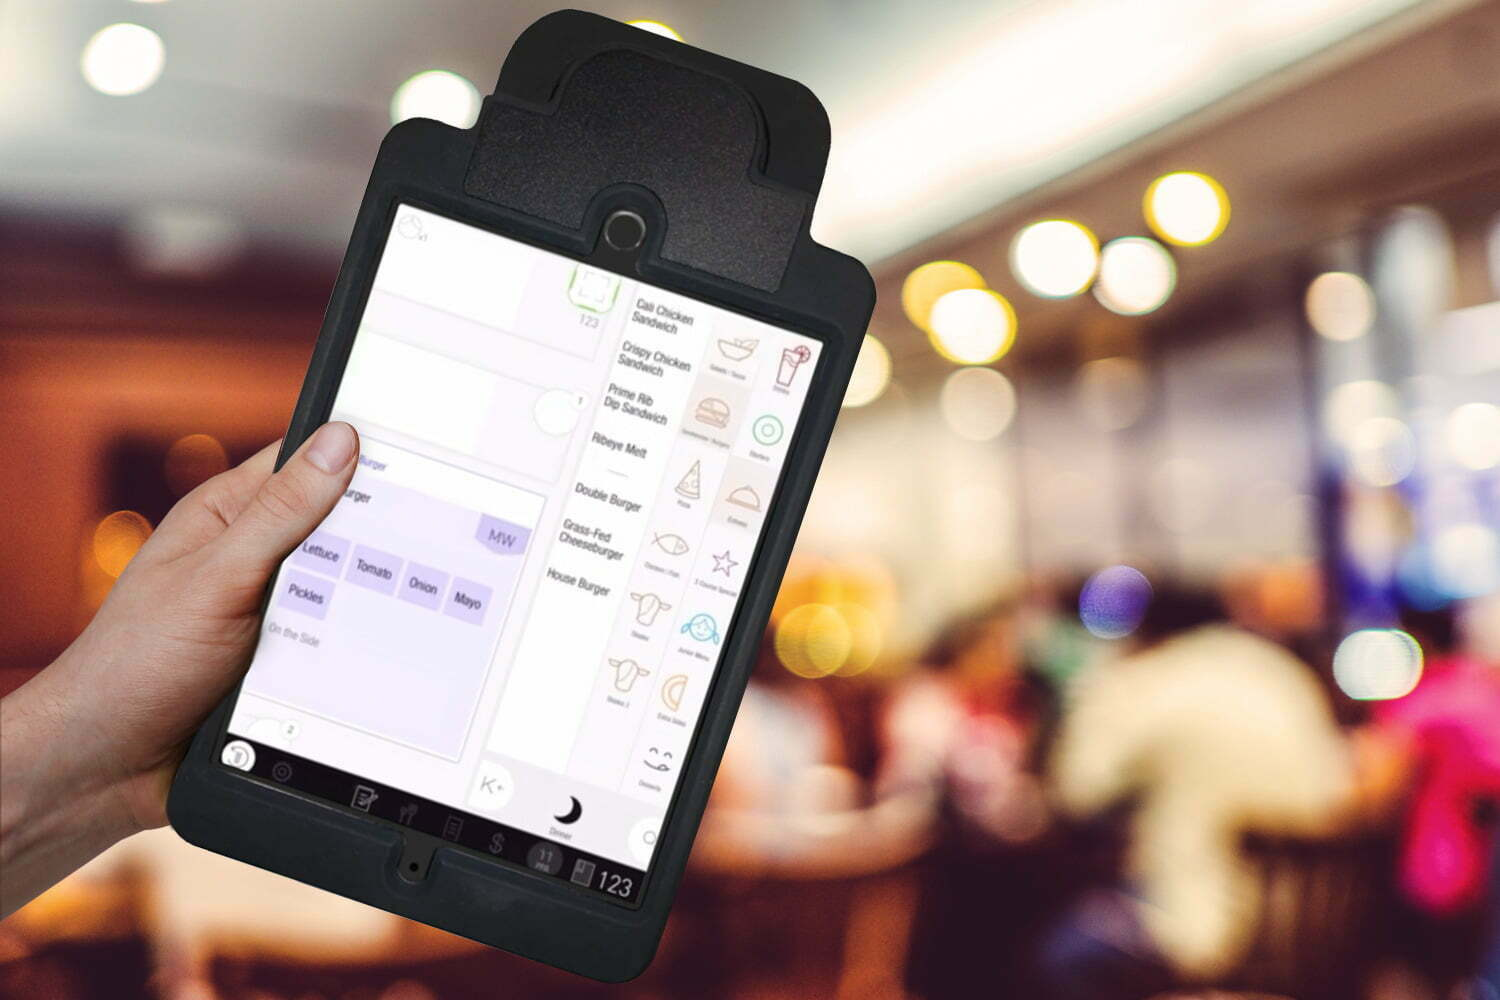 padin - The Tech Platform to Manage Restaurants in a COVID-19 World